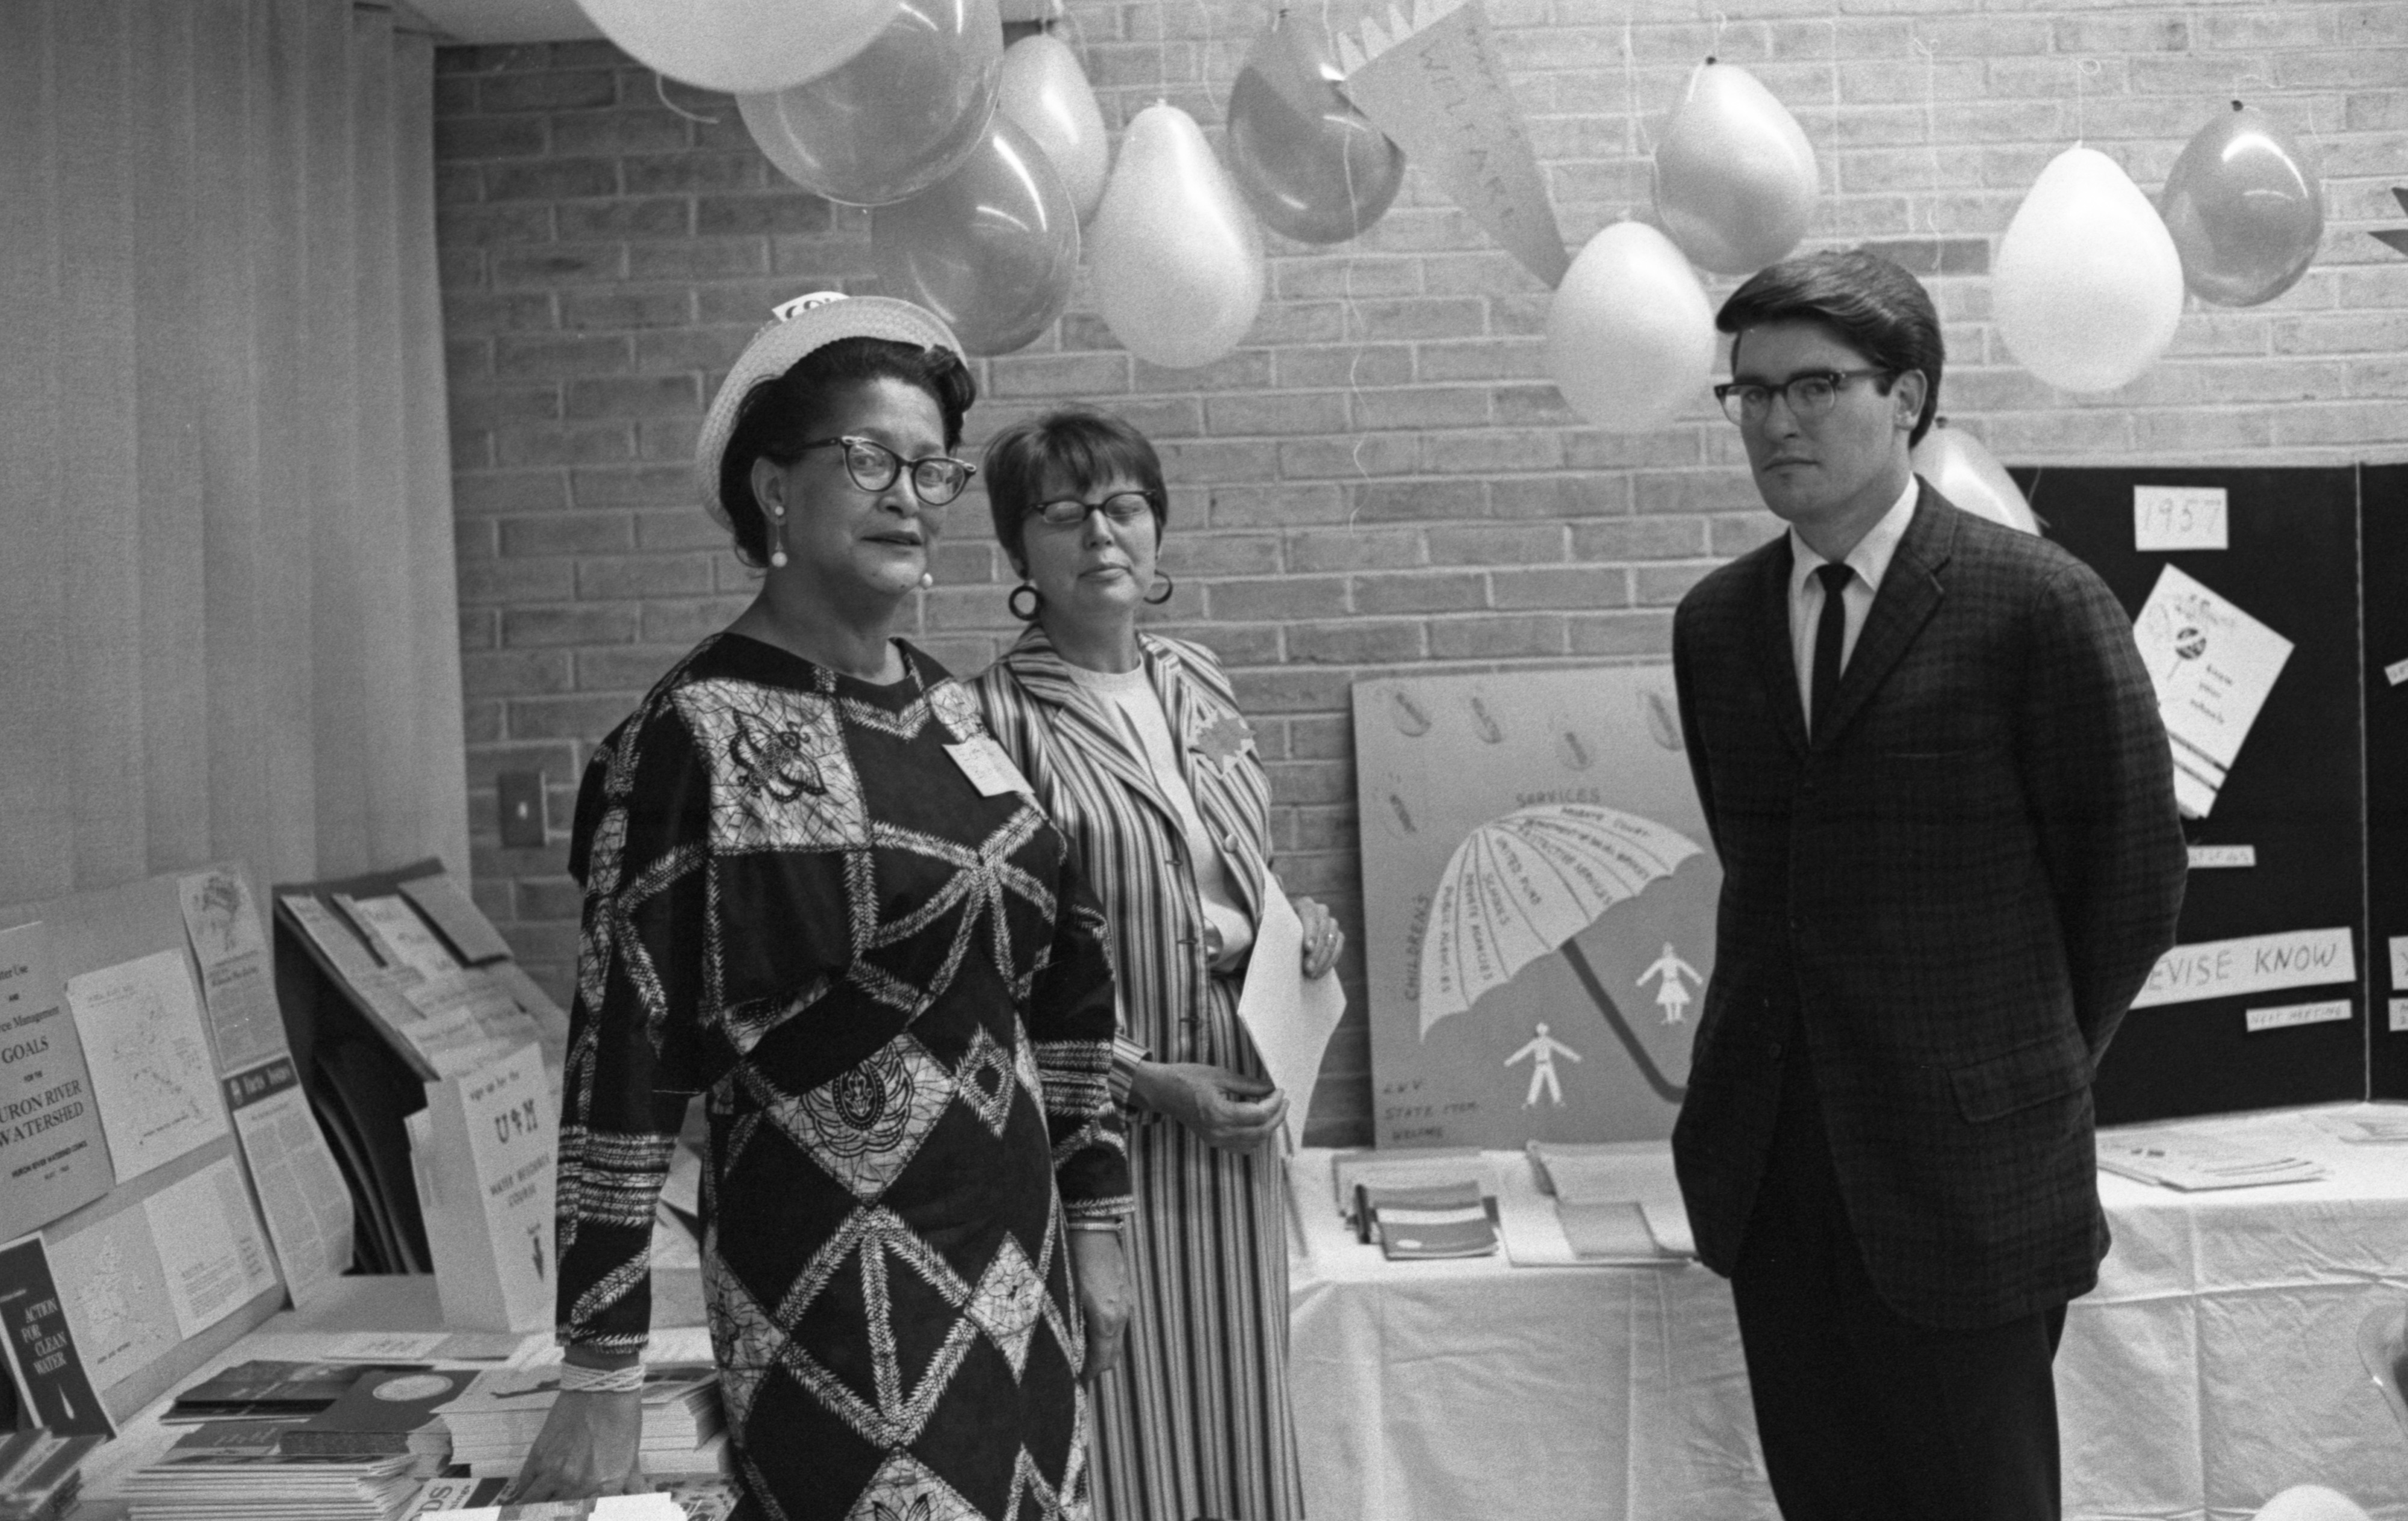 Mrs. Milton P. Brown, Mrs. Francis E. Fischer, & Jerome Fulton At The League Of Women Voters' Membership Coffee, September 1968 image